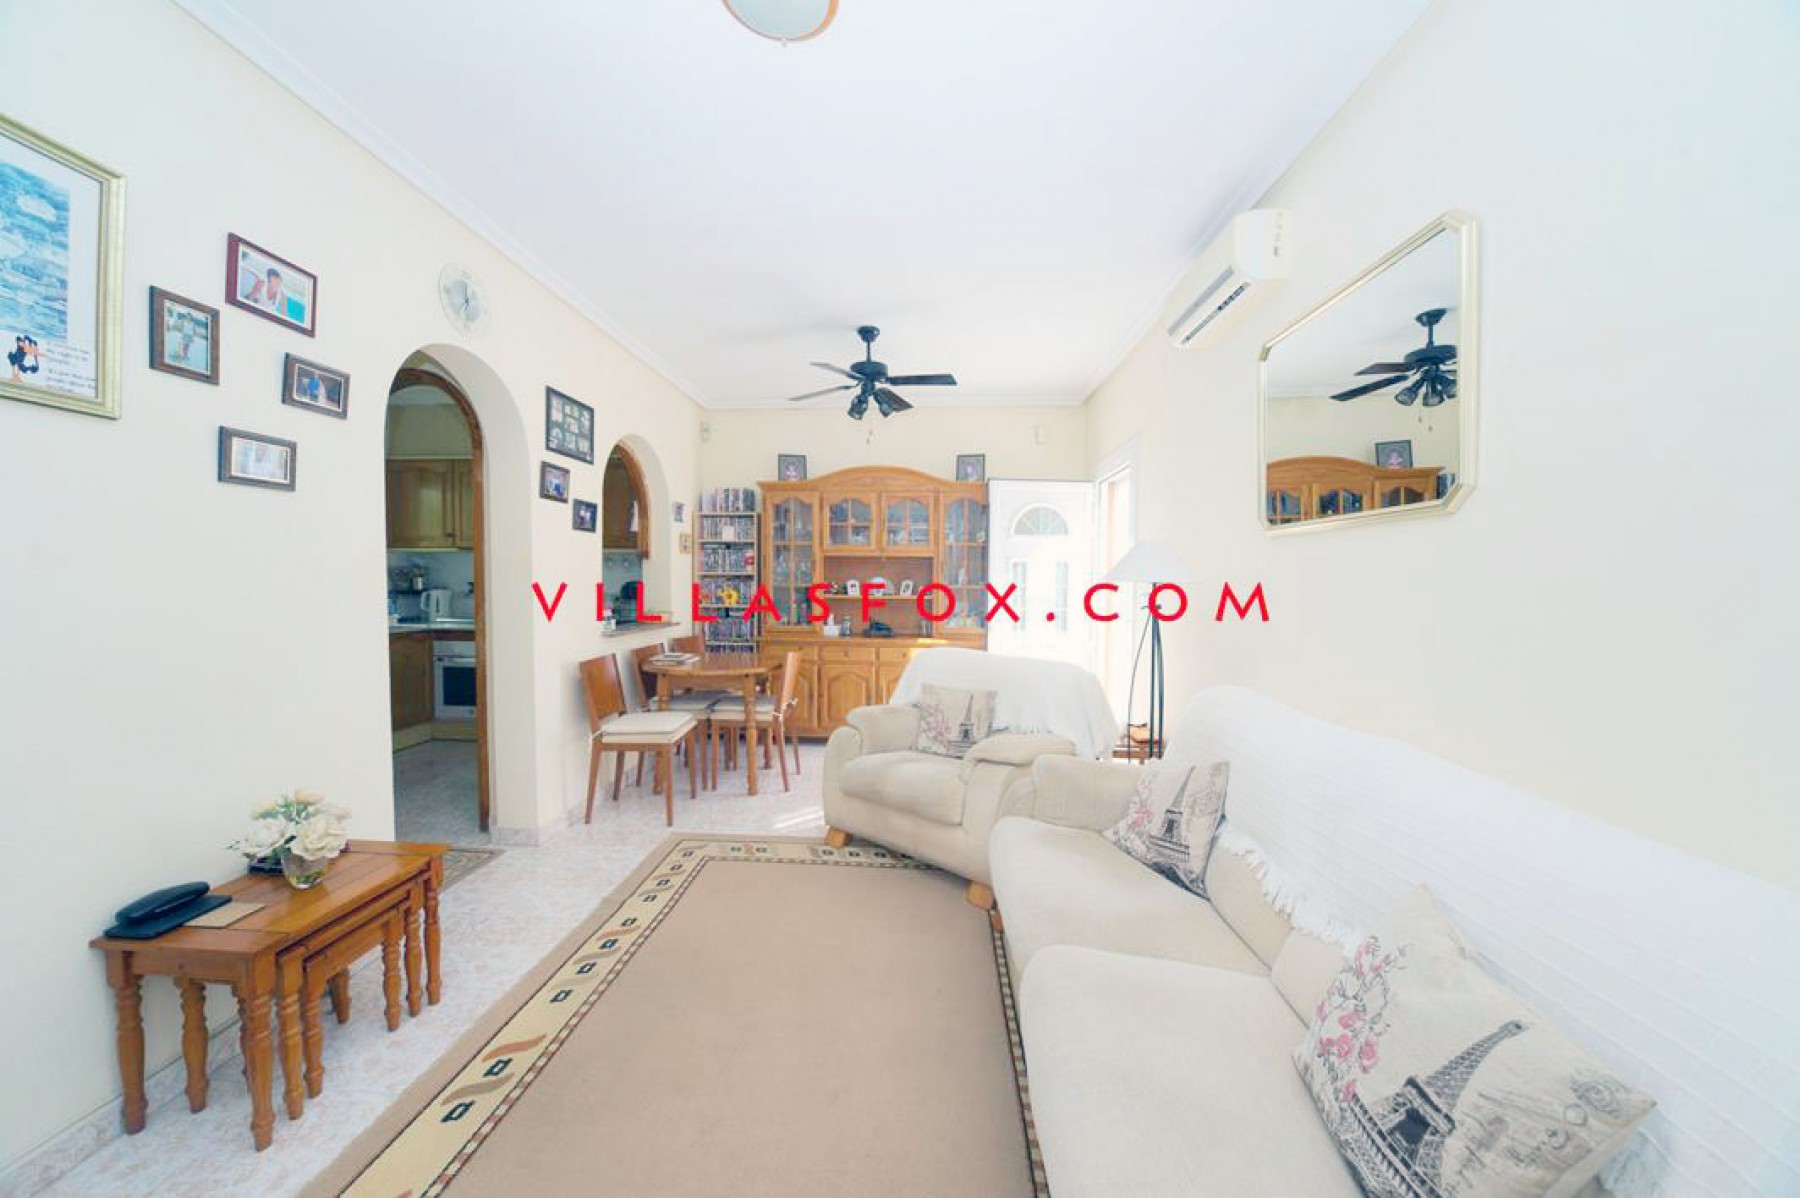 2-bedroom quad bungalow with solarium, garden and conservatory, Balcón de la Costa Blanca